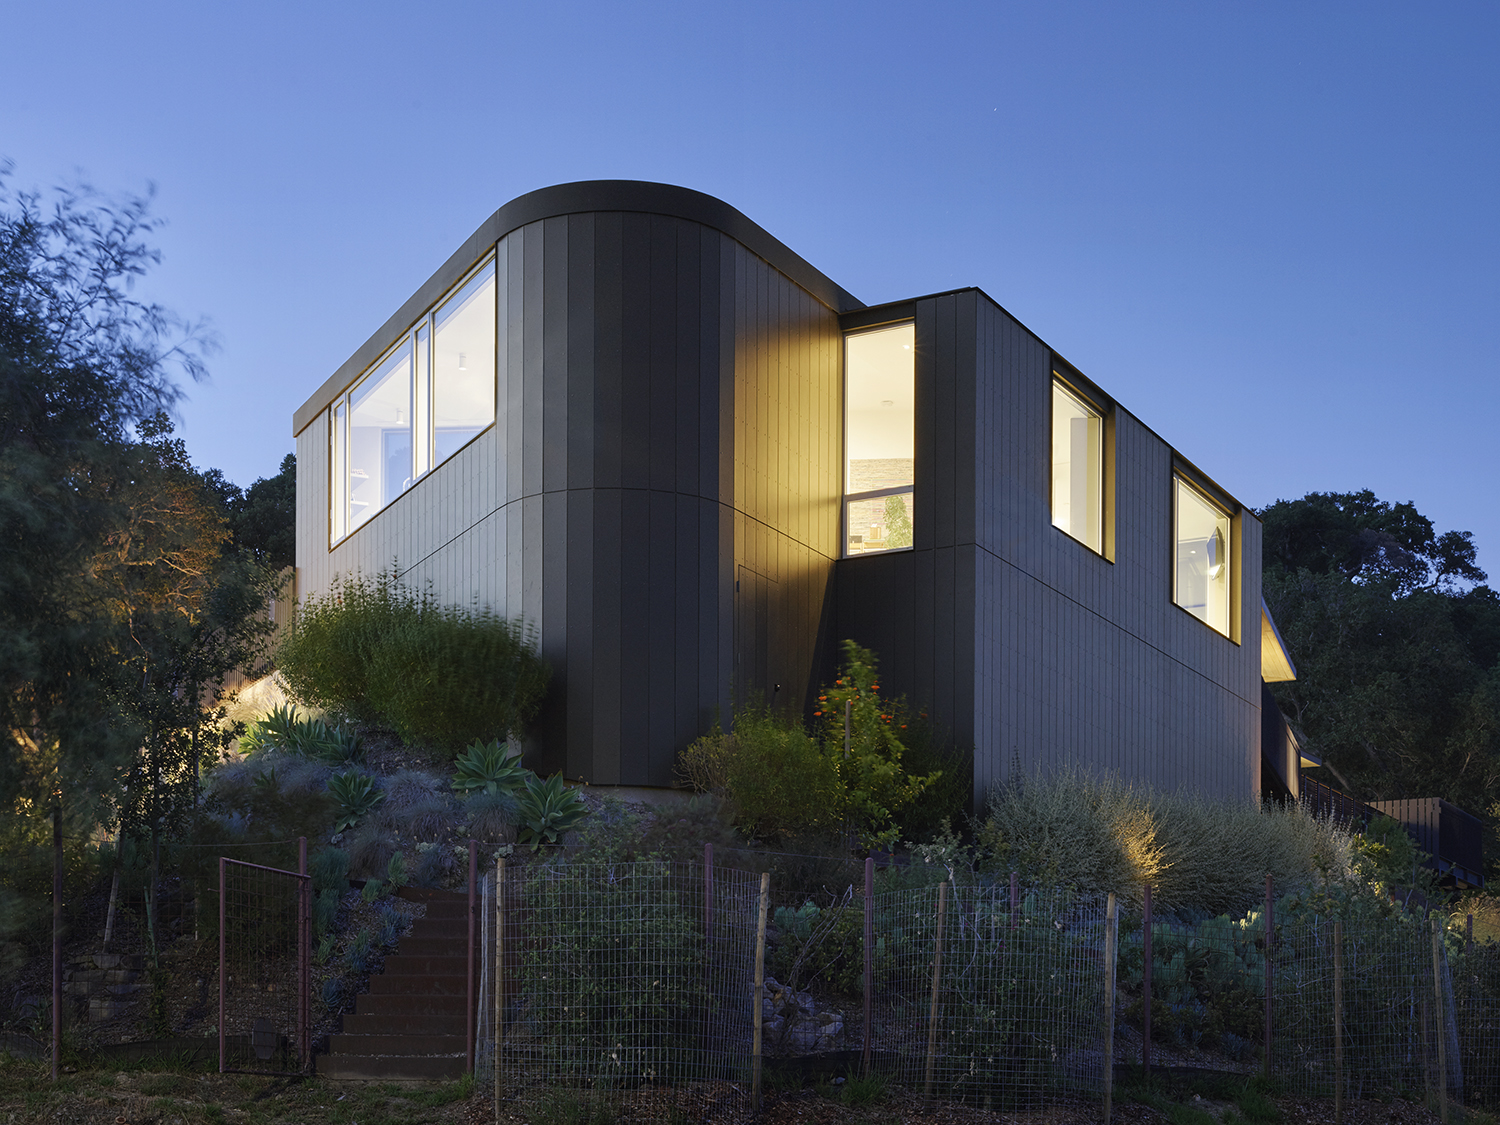 Herspring House renovated in Kentfield California, outside view at night, illuminated windows